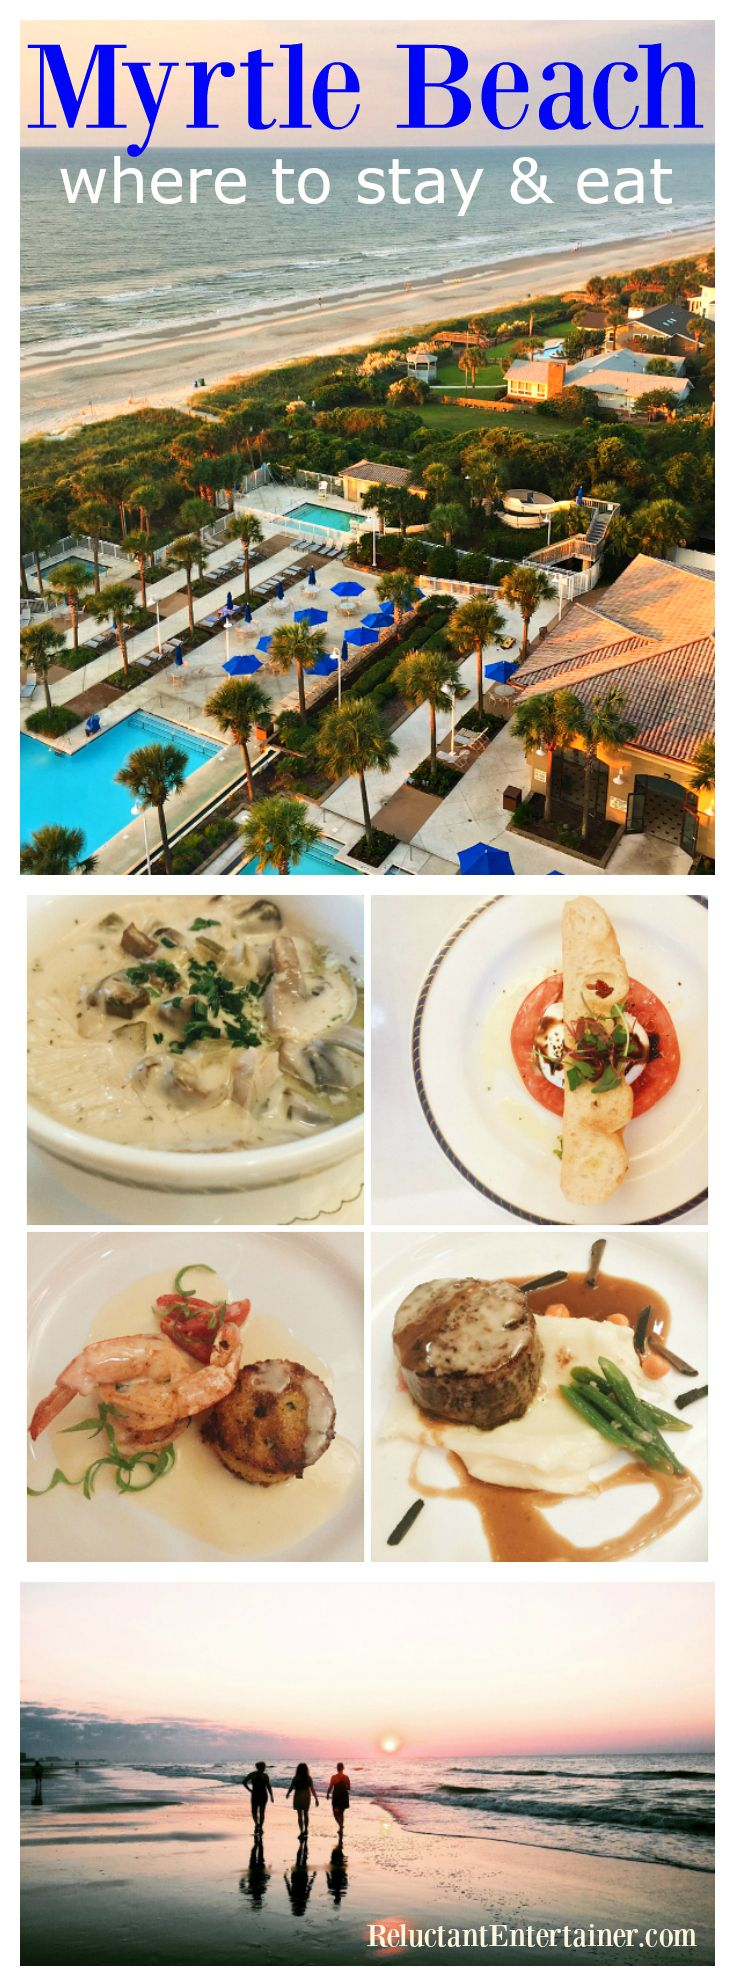 Myrtle Beach: Where to Stay and Eat at ReluctantEntertaier.com